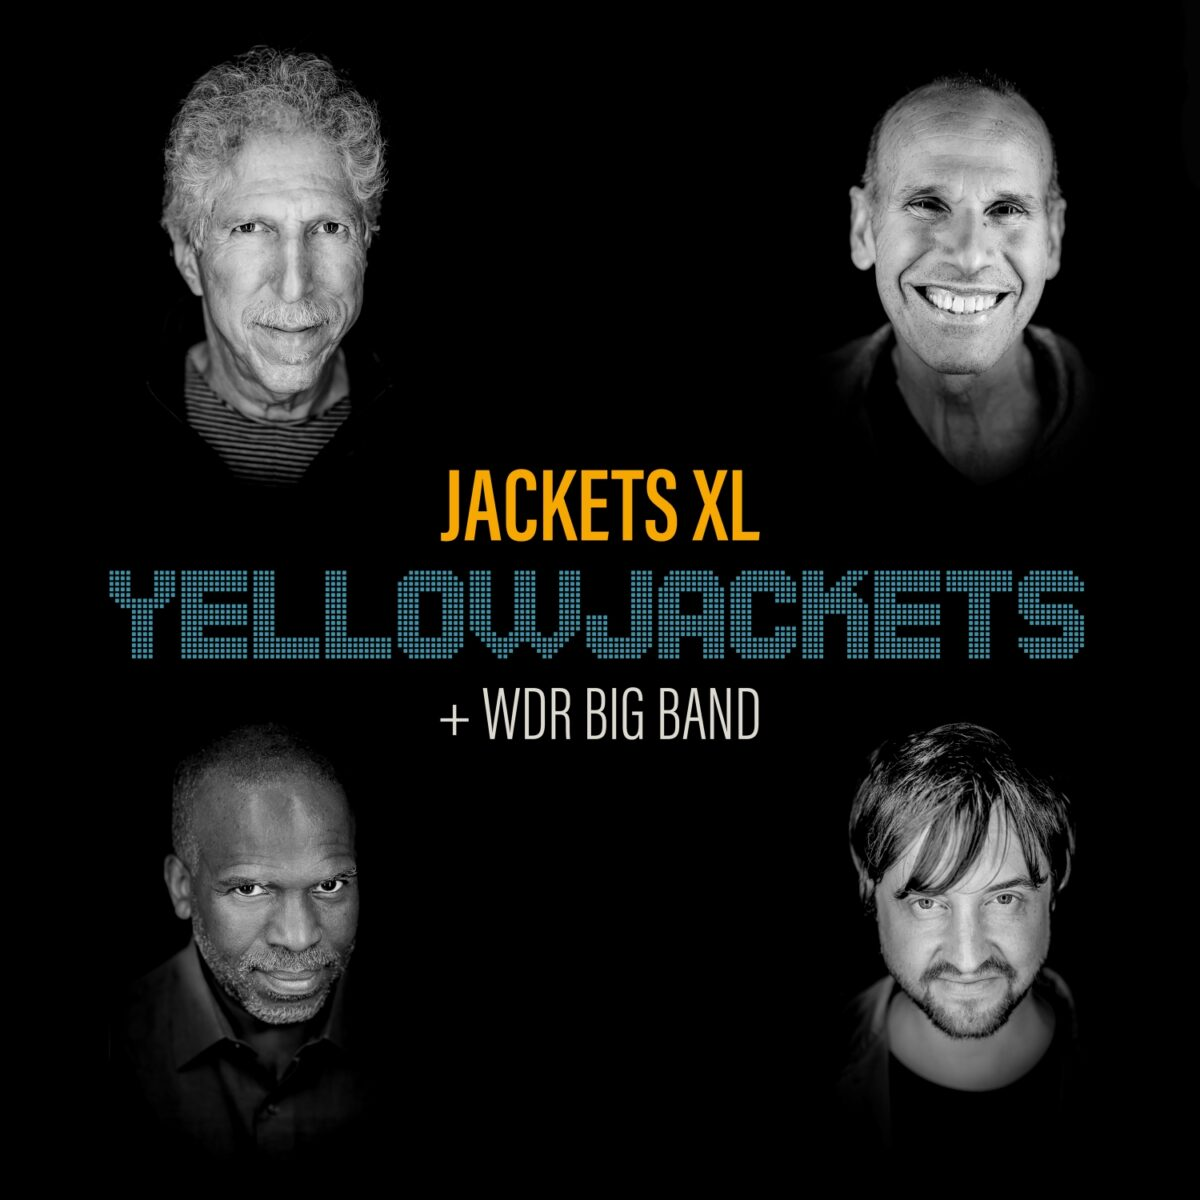 mac_1175_yellowjackets_wdrbb_jackets_xl_cover_3000x3000_rgb__large